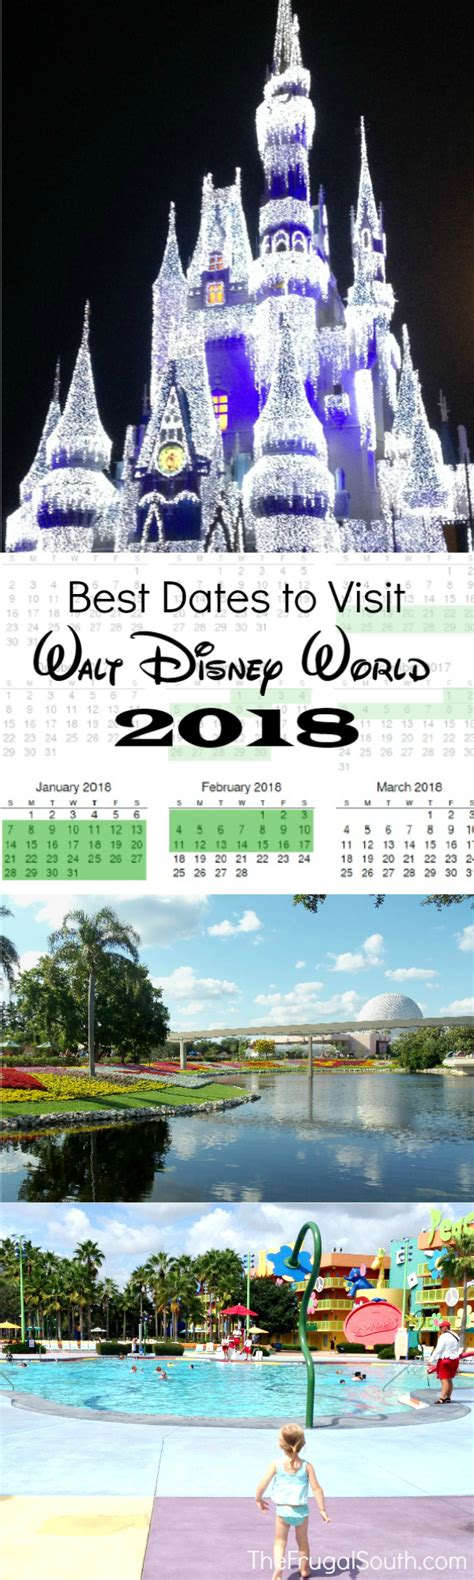 new year 2018 vacation period the best dates to visit walt disney world printable 2017